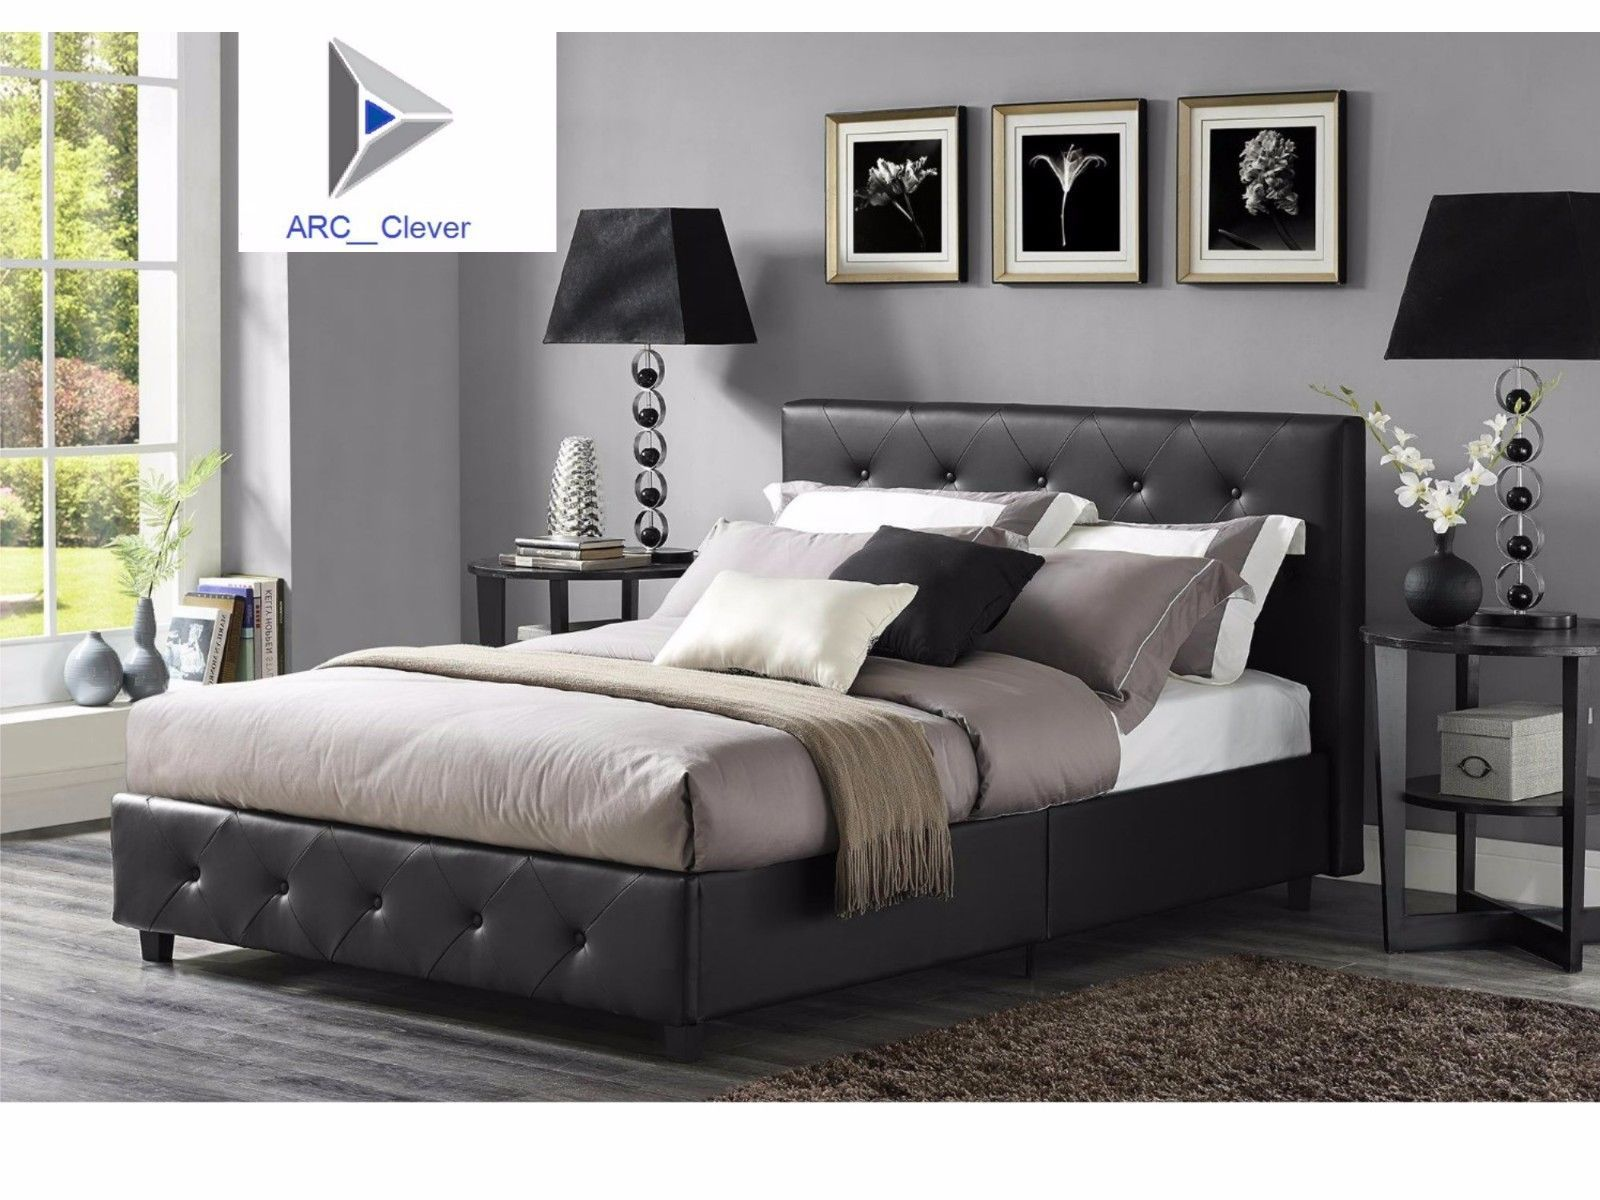 Upholstered bed with a. Faux leather upholstered side